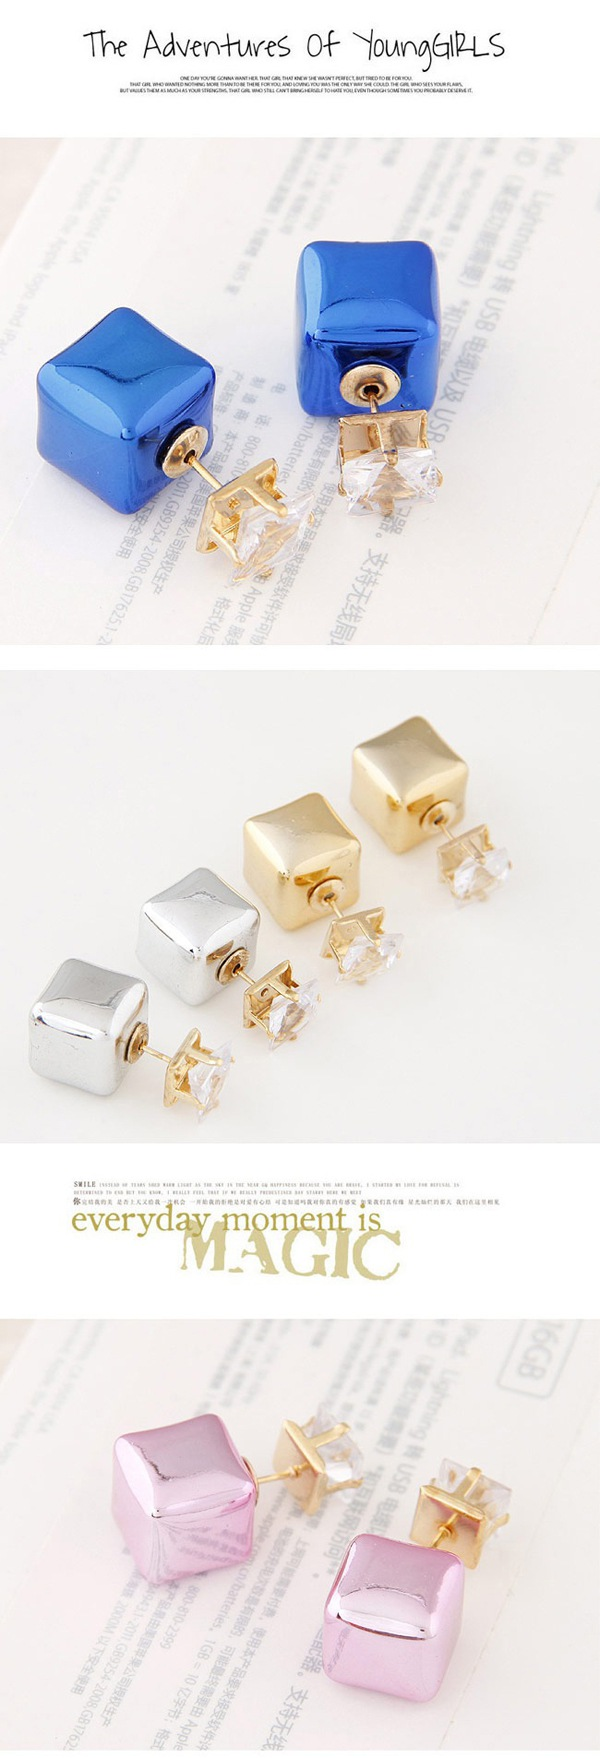 Anting Tusuk T6D7E8